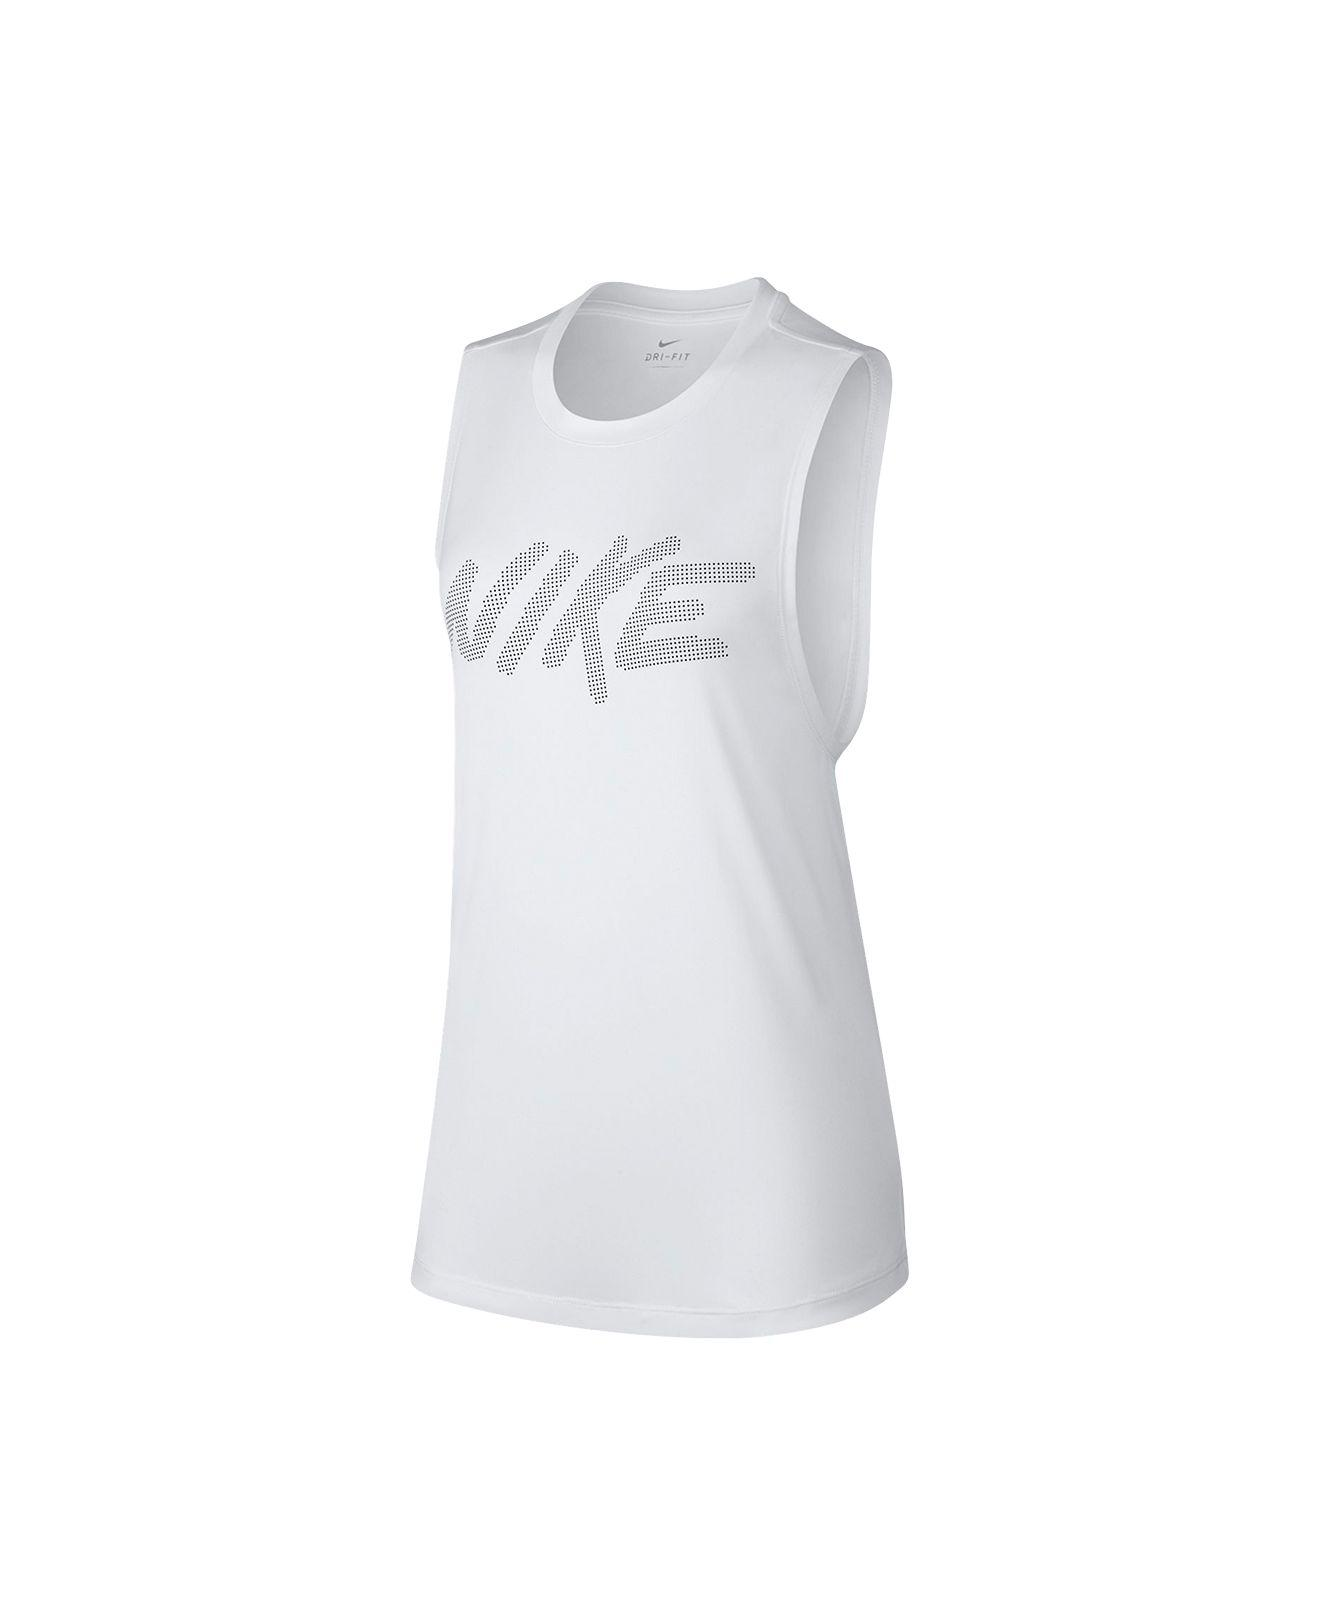 81faeea0279026 Lyst - Nike Dri-fit Logo Tank Top in White